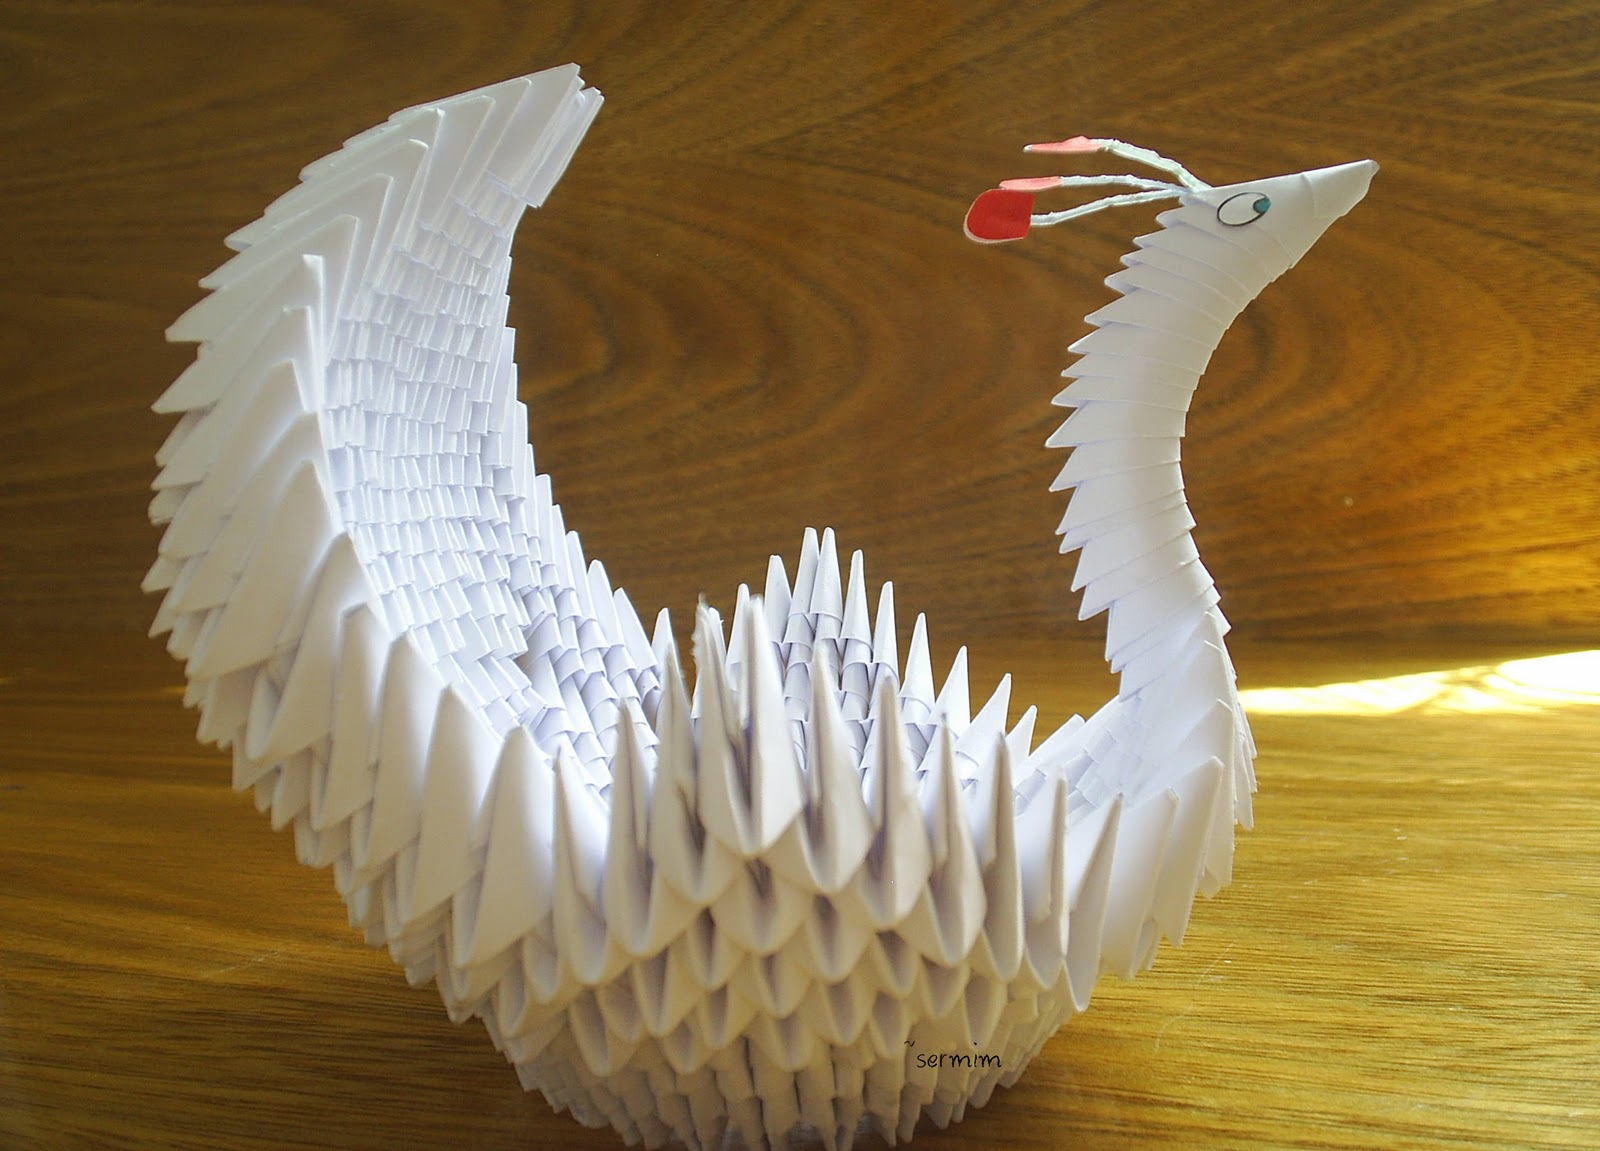 fun with paper: paper folding techniques - photo#27